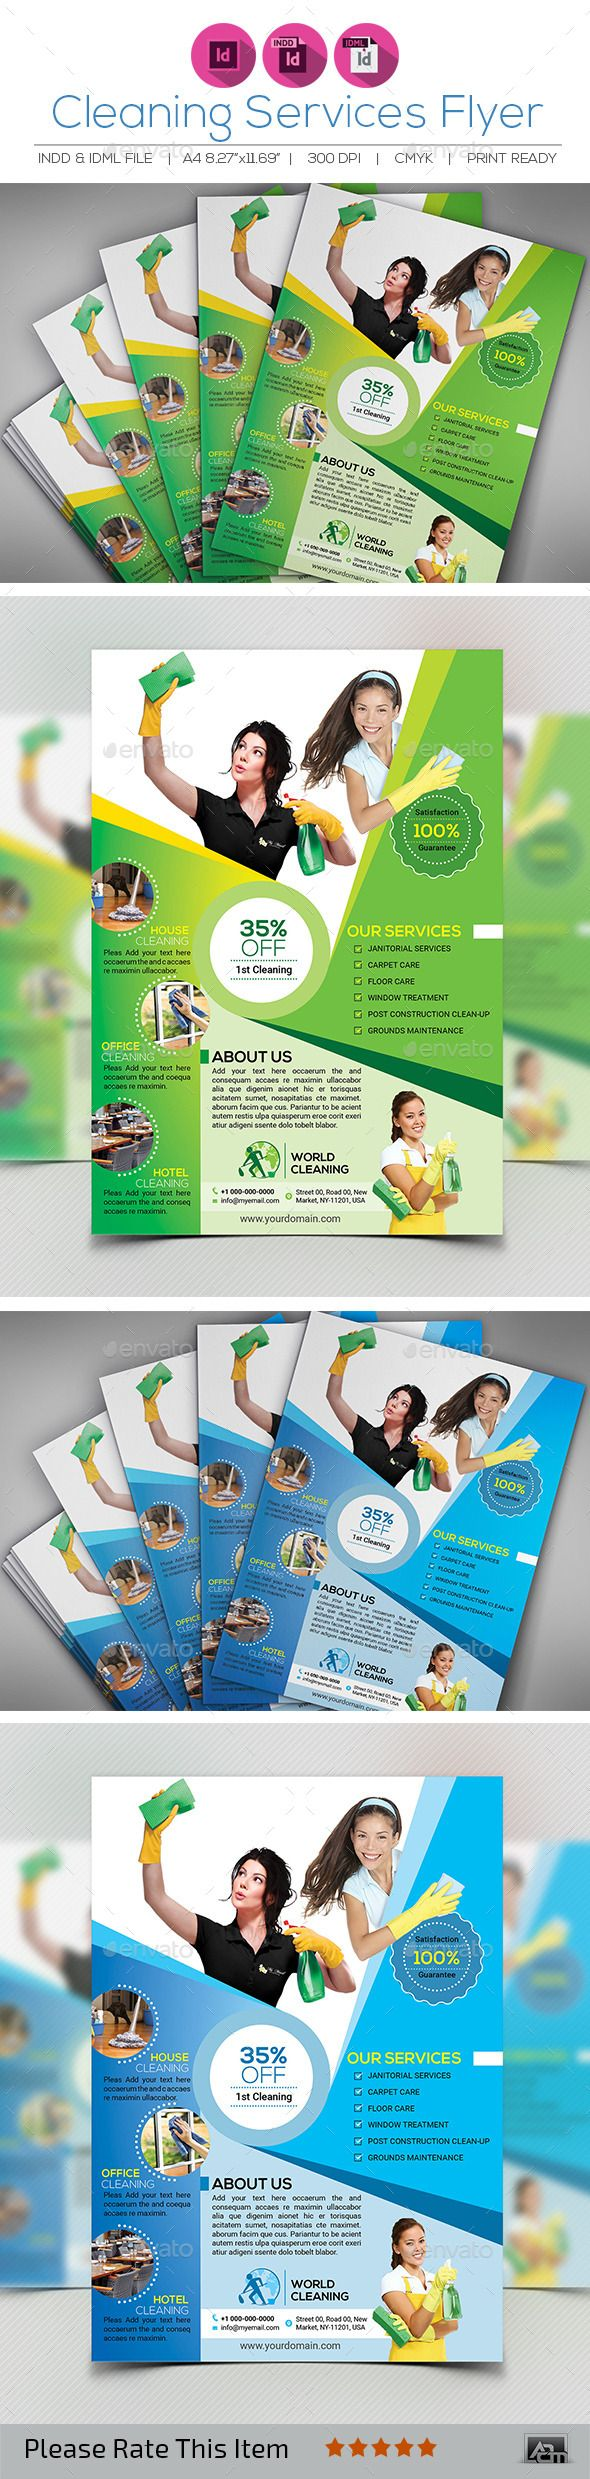 Cleaning Services Flyer Template InDesign INDD #design Download: http://graphicriver.net/item/cleaning-services-flyer/12992322?ref=ksioks